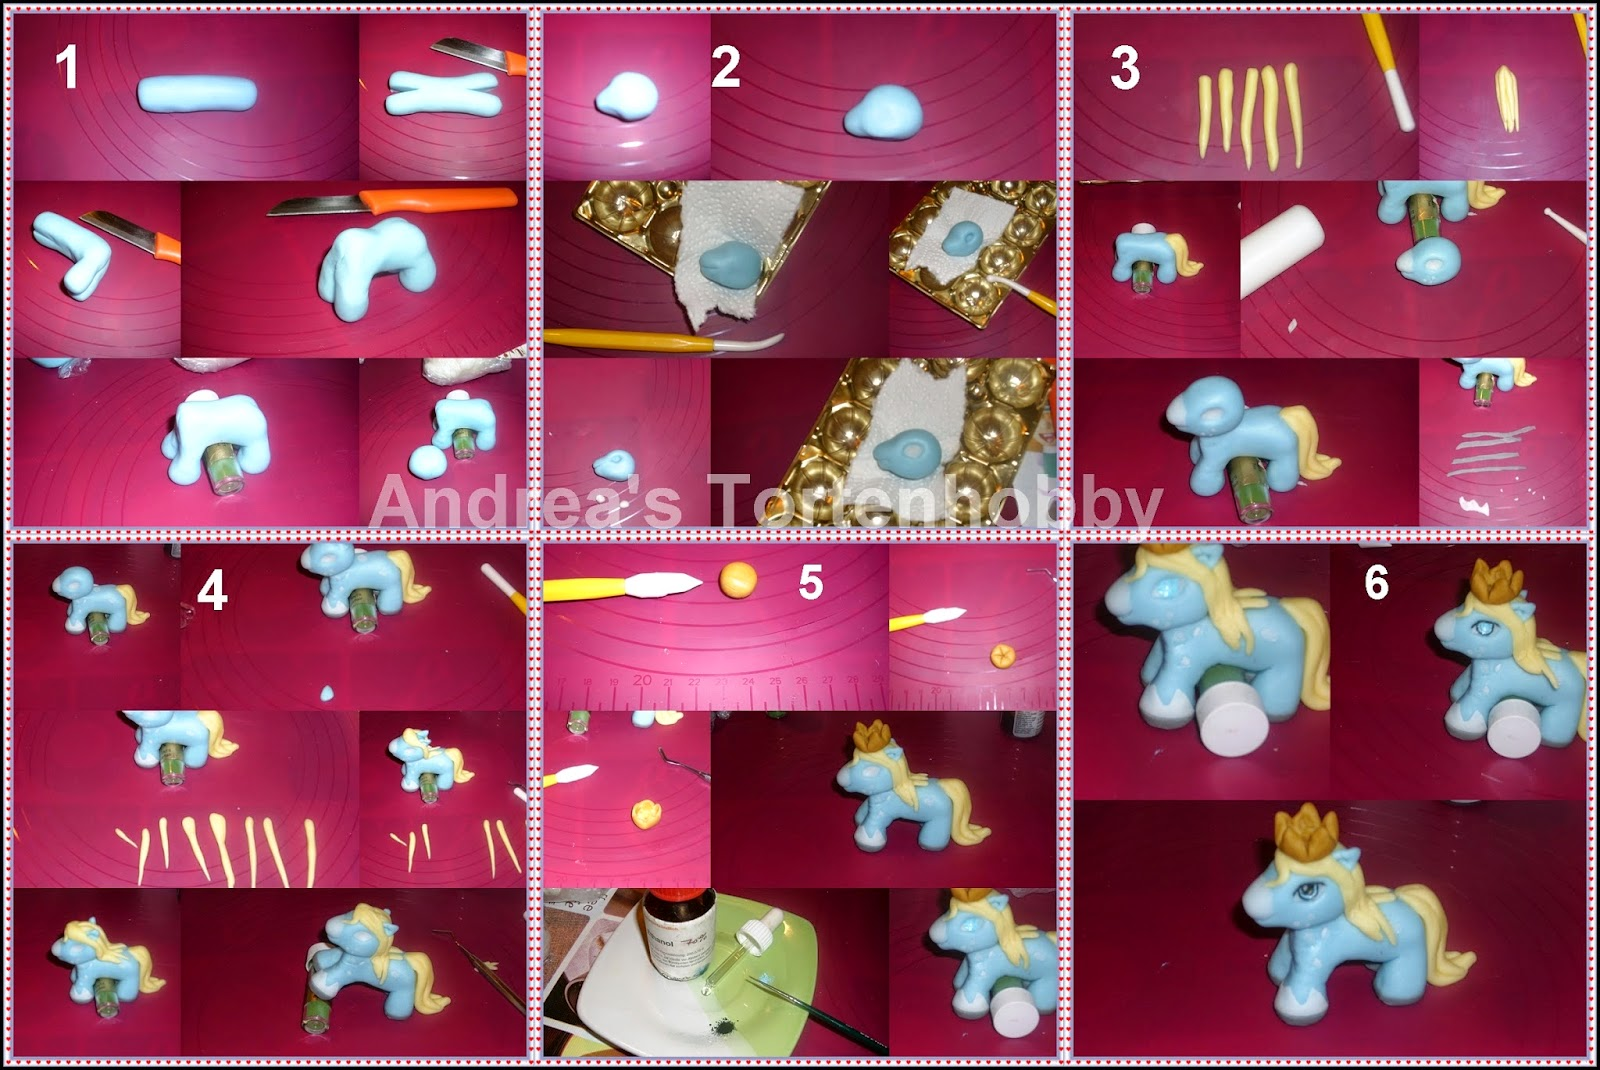 andrea s tortenhobby filly fondant tutorial anleitung. Black Bedroom Furniture Sets. Home Design Ideas